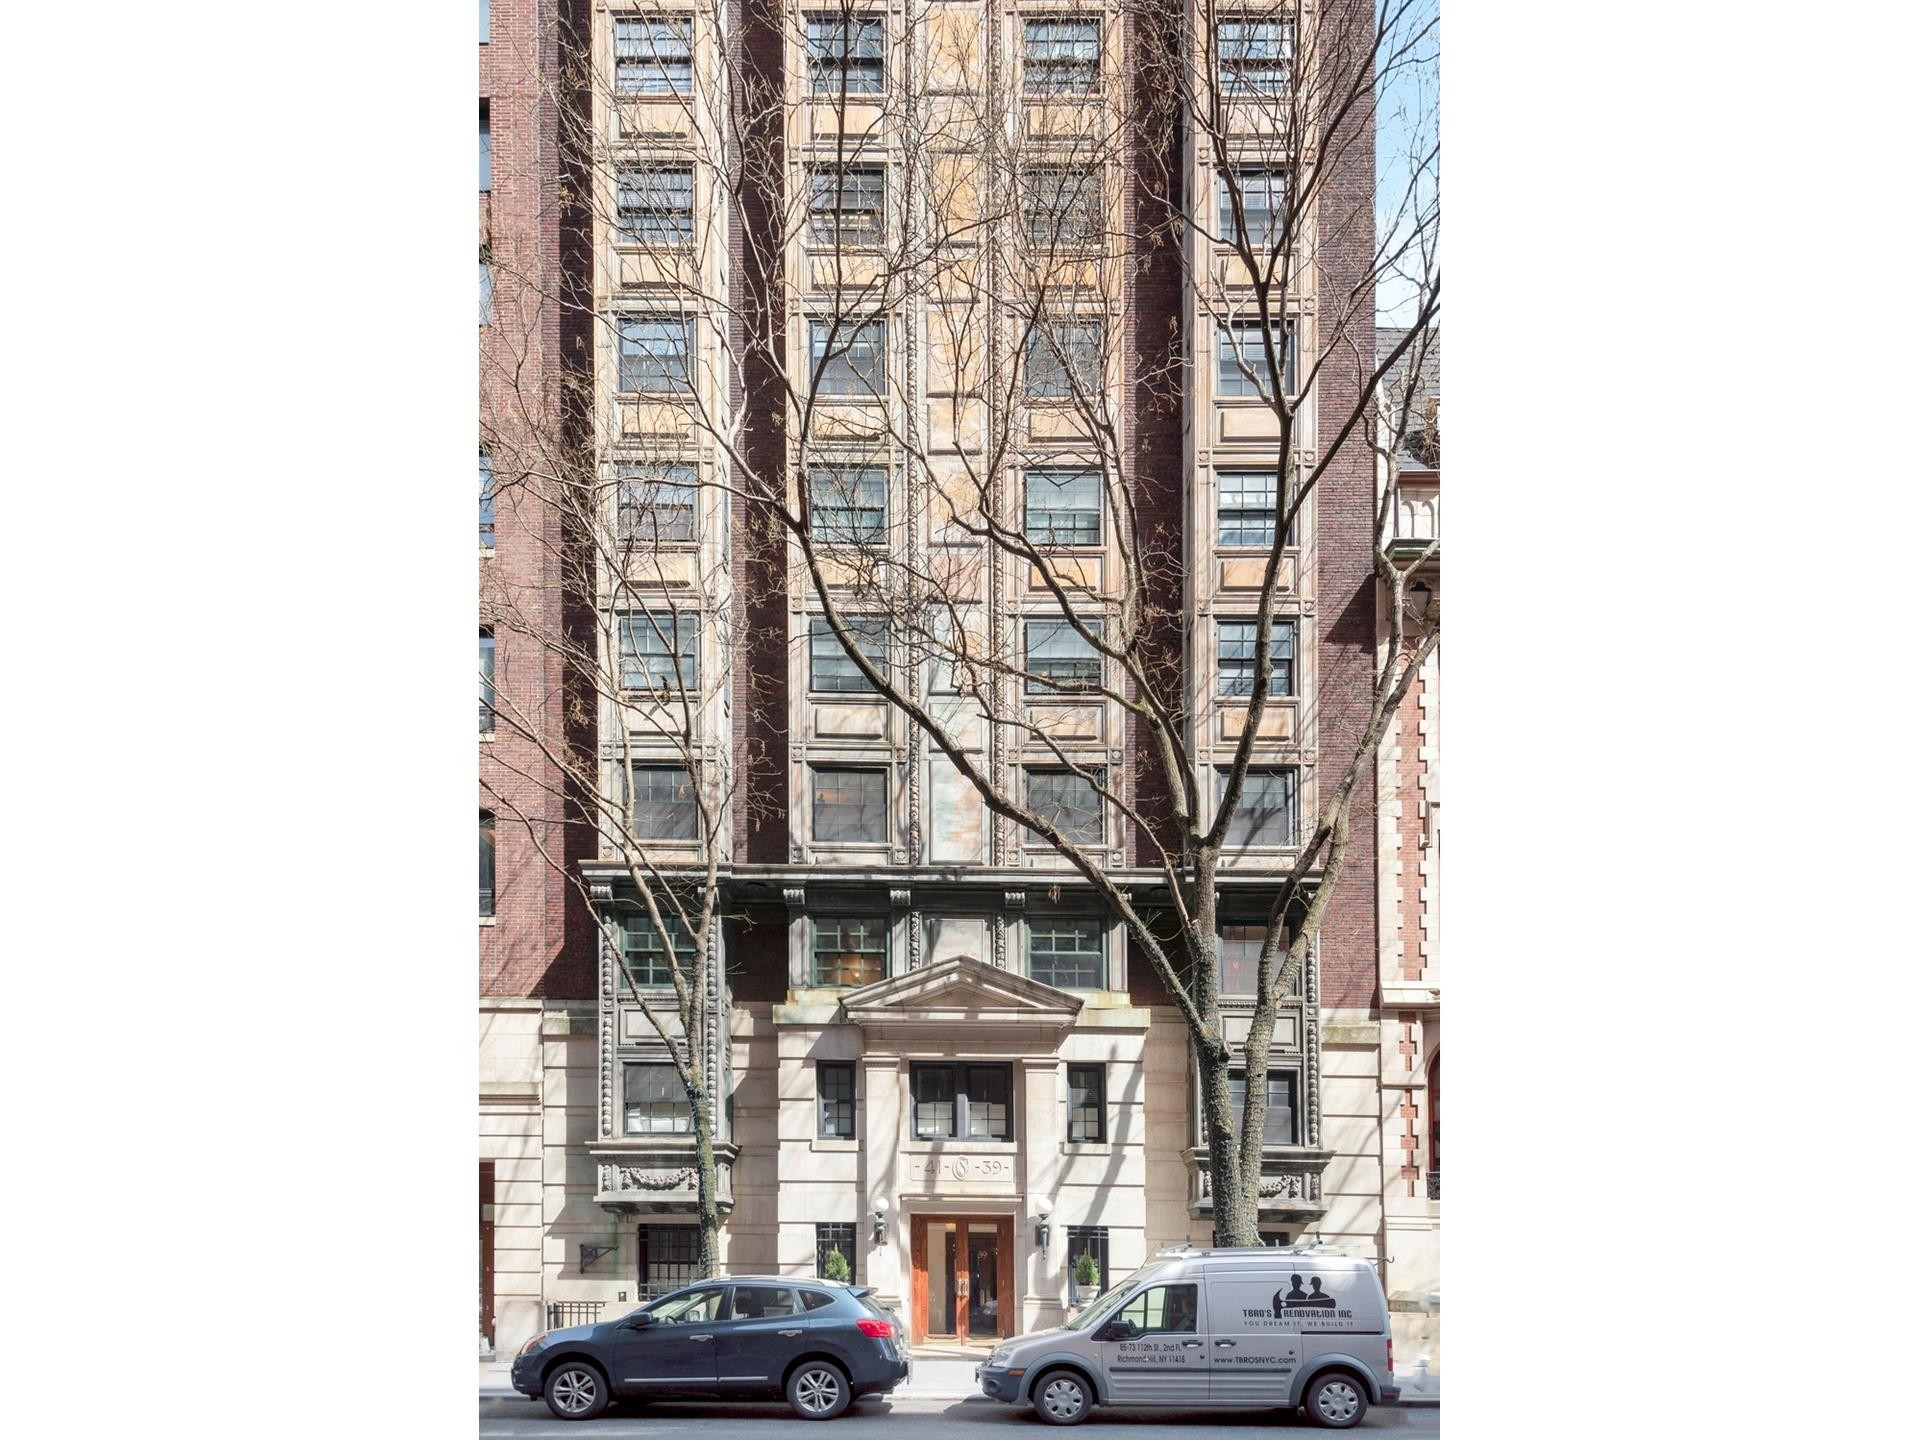 12. Co-op Properties 為 特賣 在 Colonial Studios, 39 W 67TH ST , 401402301 Lincoln Square, 纽约, NY 10023